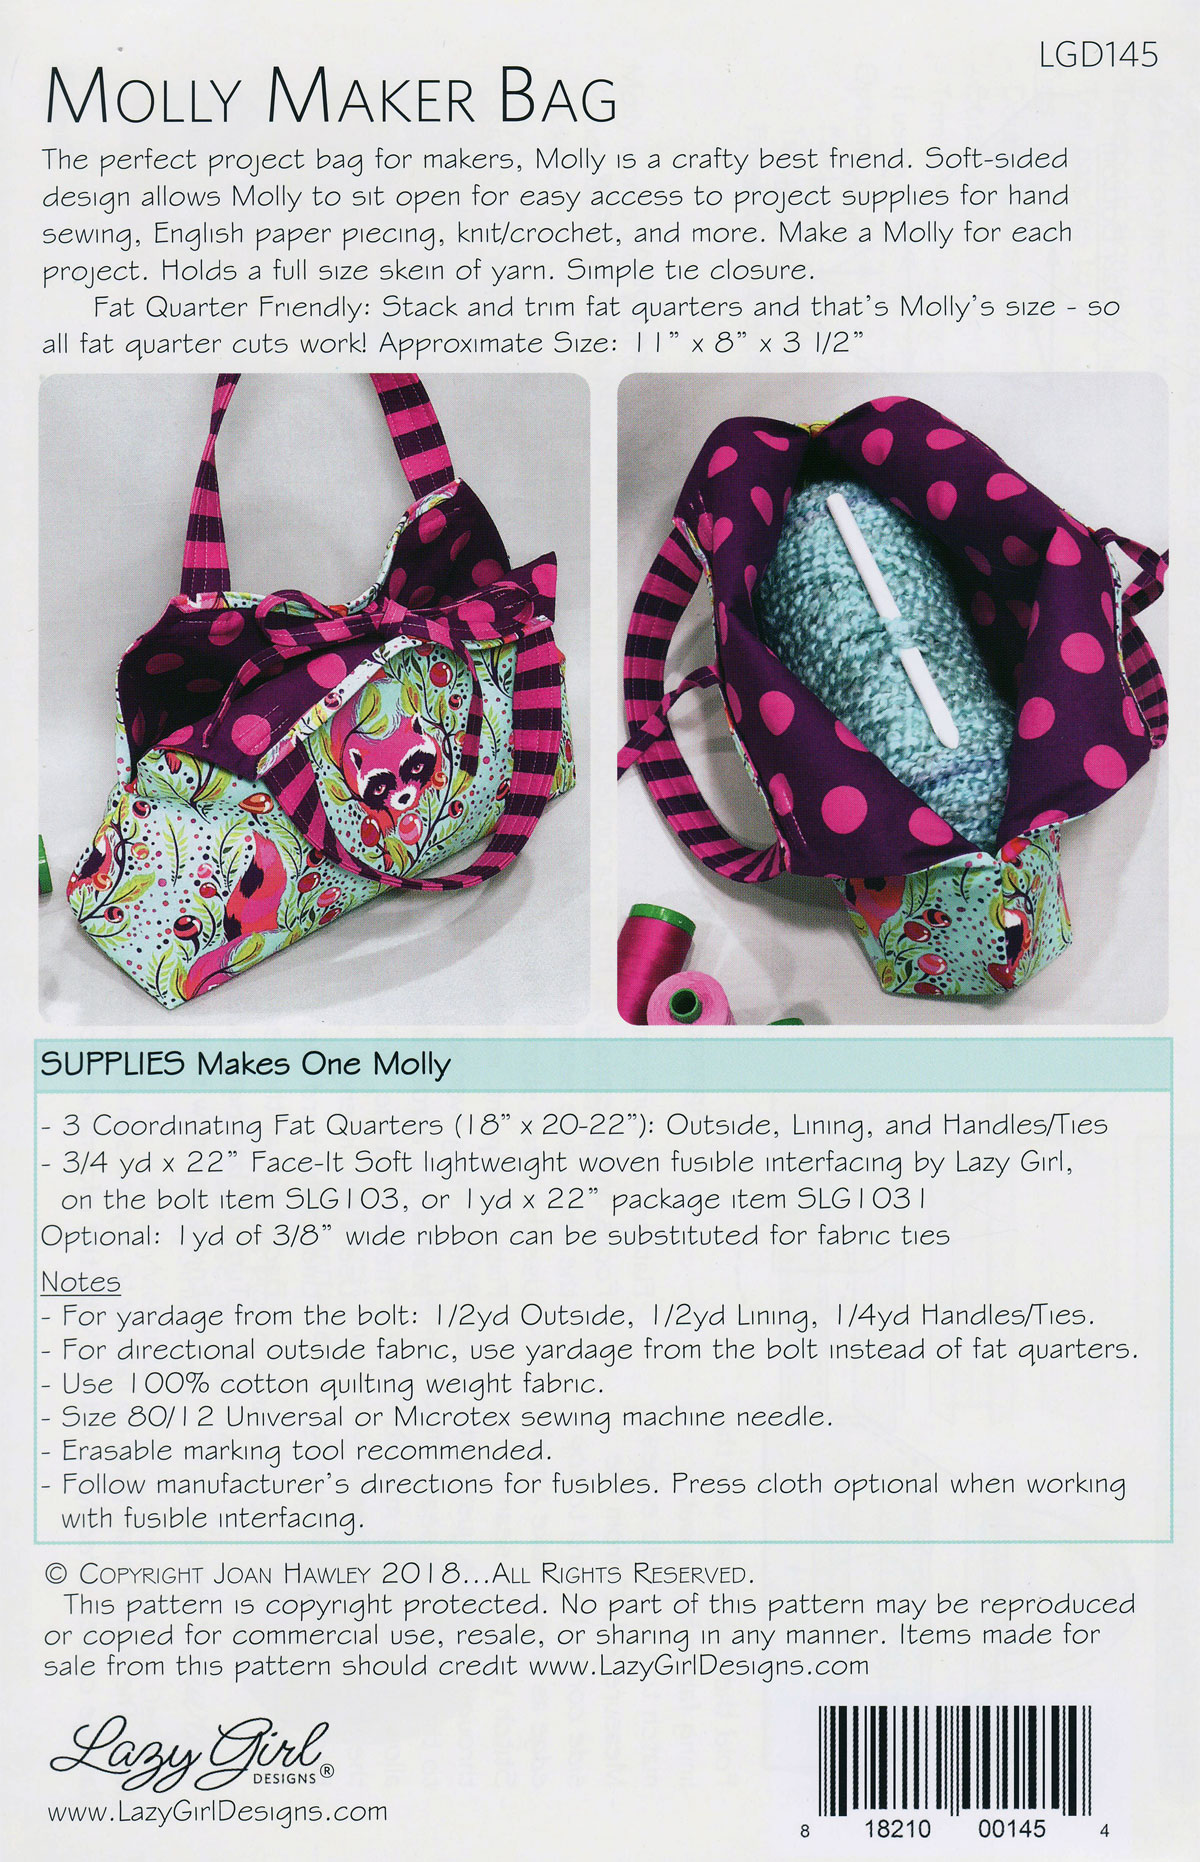 Molly-Maker-Bag-sewing-pattern-Lazy-Girl-Designs-back